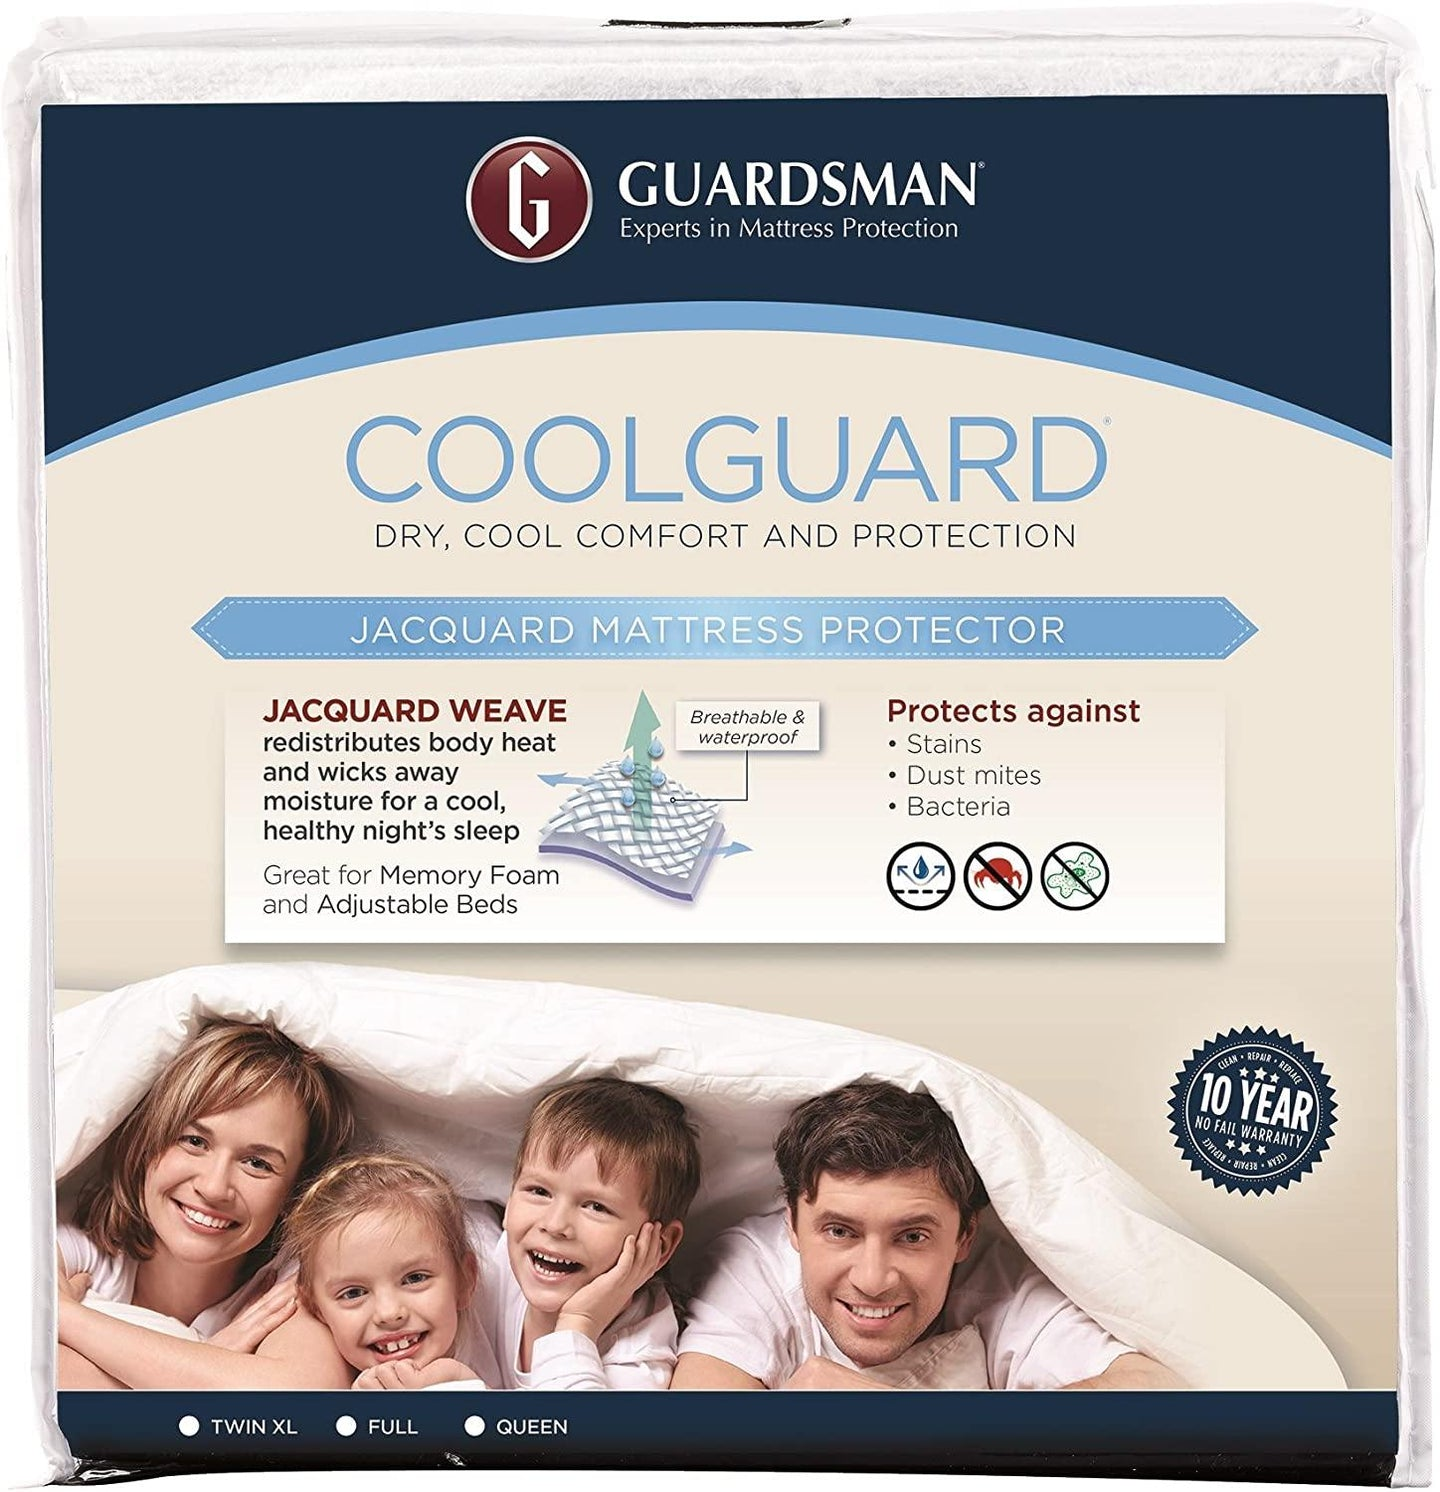 Guardsman Cool Guard Mattress Protector - Discount Mattress Co